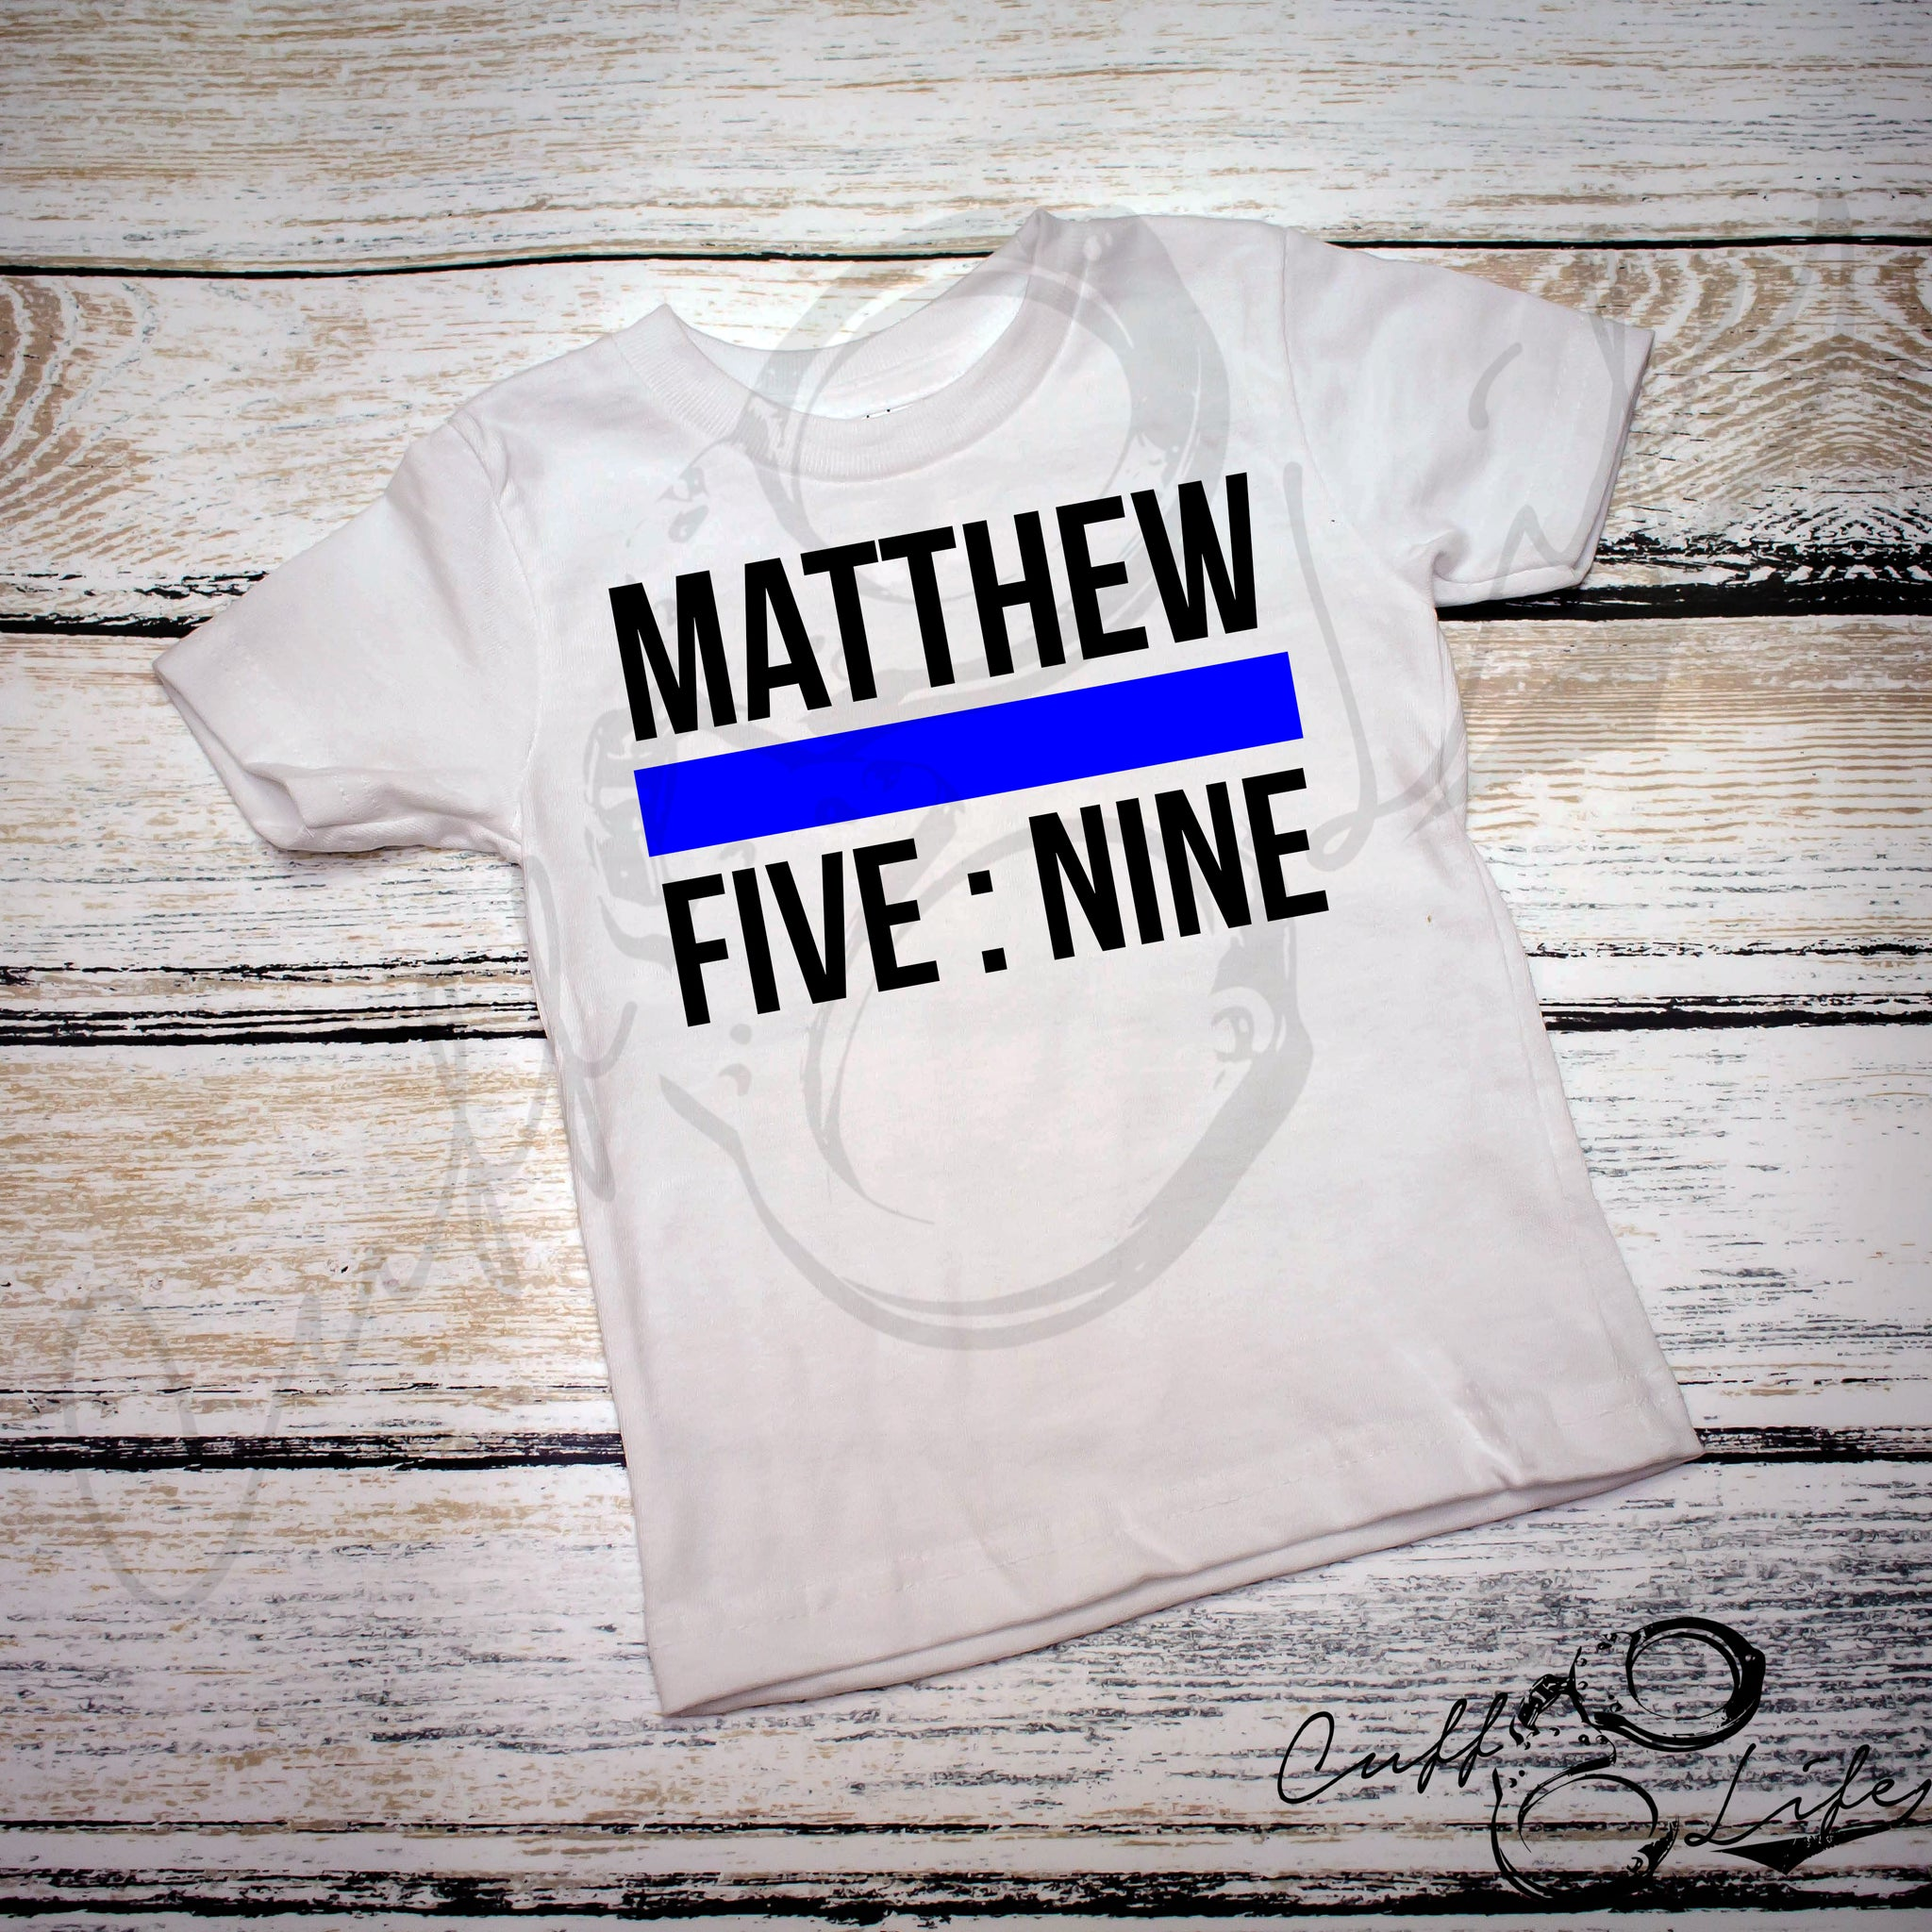 Matthew Five:Nine - Toddler/Youth T-Shirt